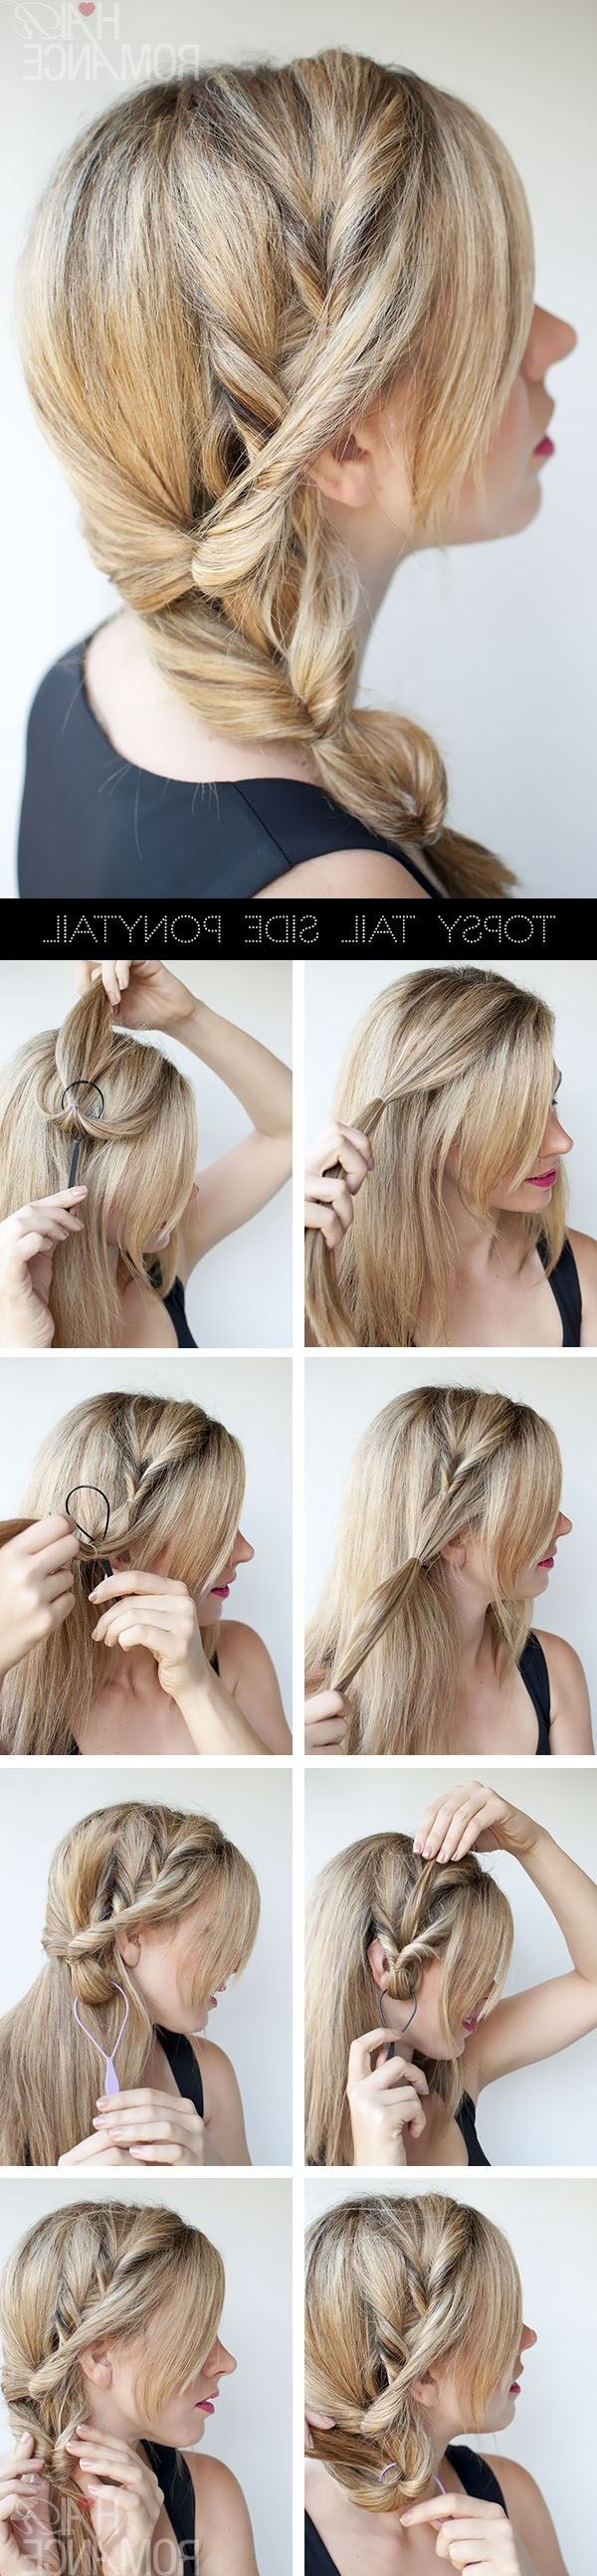 Topsy Tail Ponytail Tutorial – The No Braid Side Braid Hairstyle With Regard To Most Recent Long Pony Hairstyles With A Side Braid (View 17 of 20)